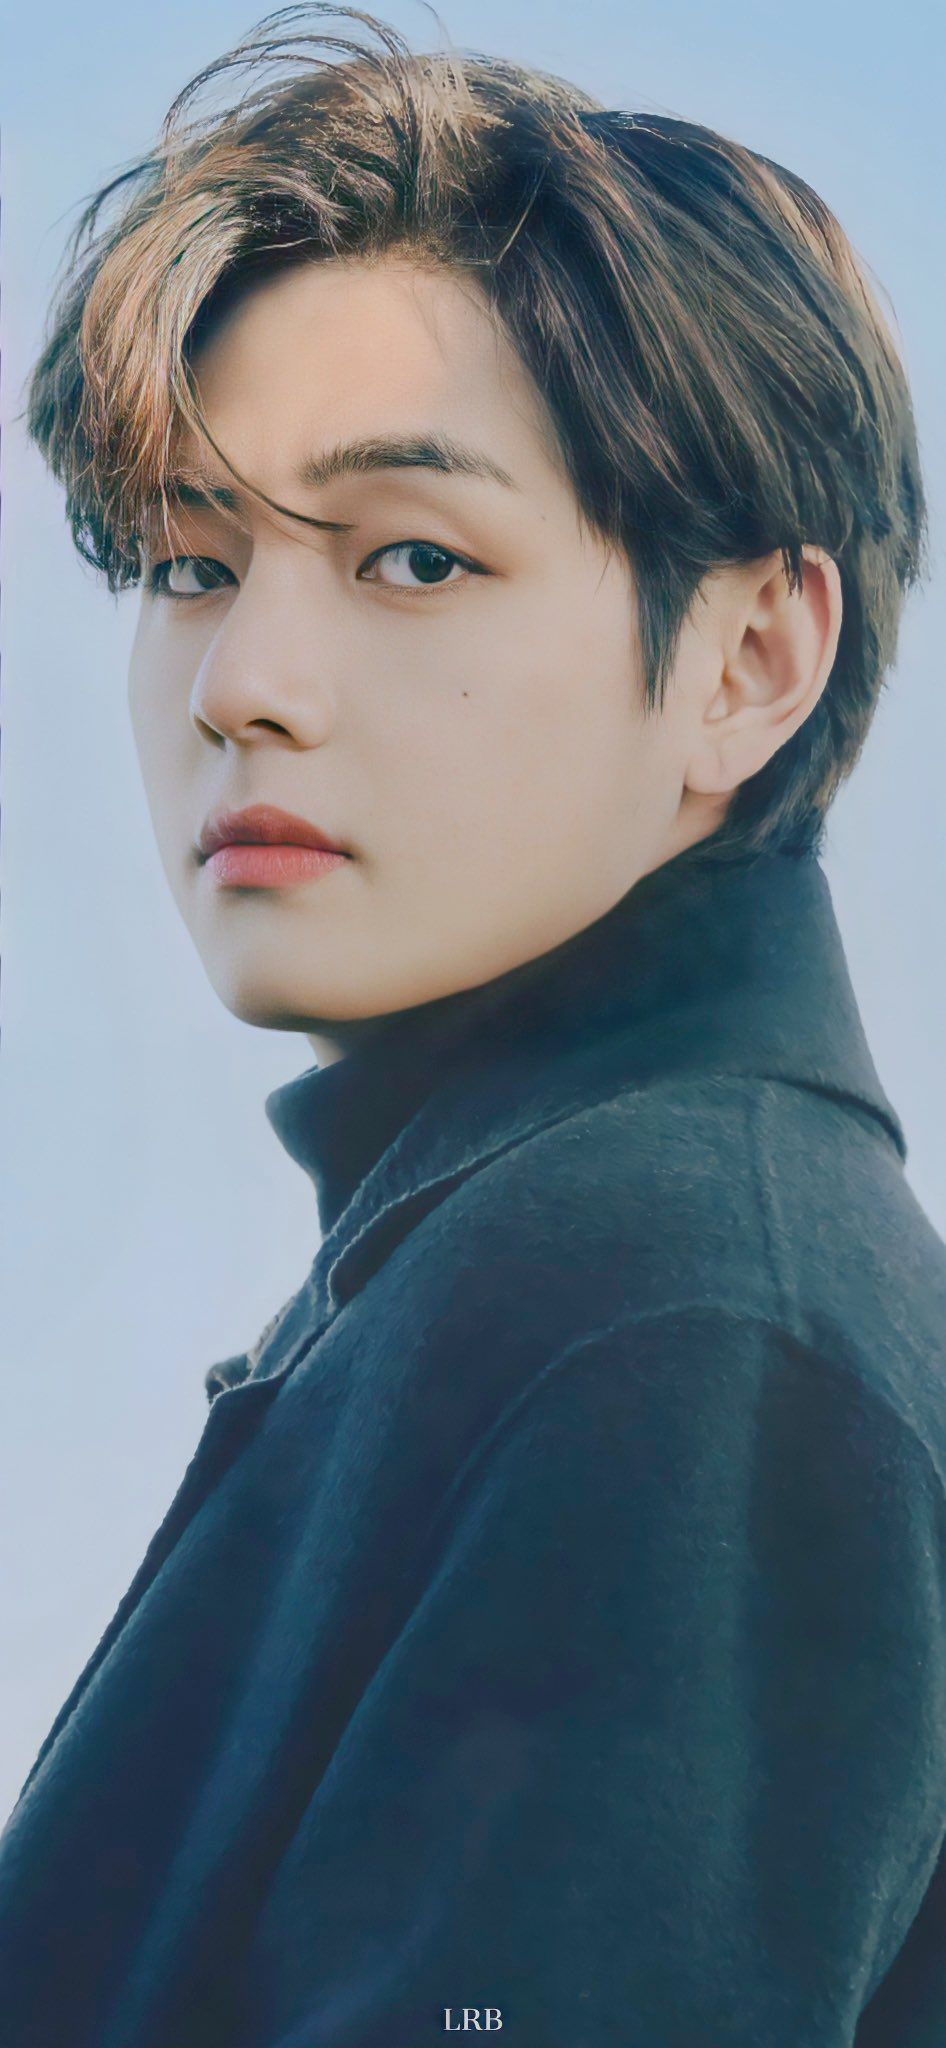 Pin By Alison Isaza On Taehyung In 2021 Kim Taehyung Wallpaper Kim Taehyung Kim Taehyung Funny Bts wallpaper v 2021